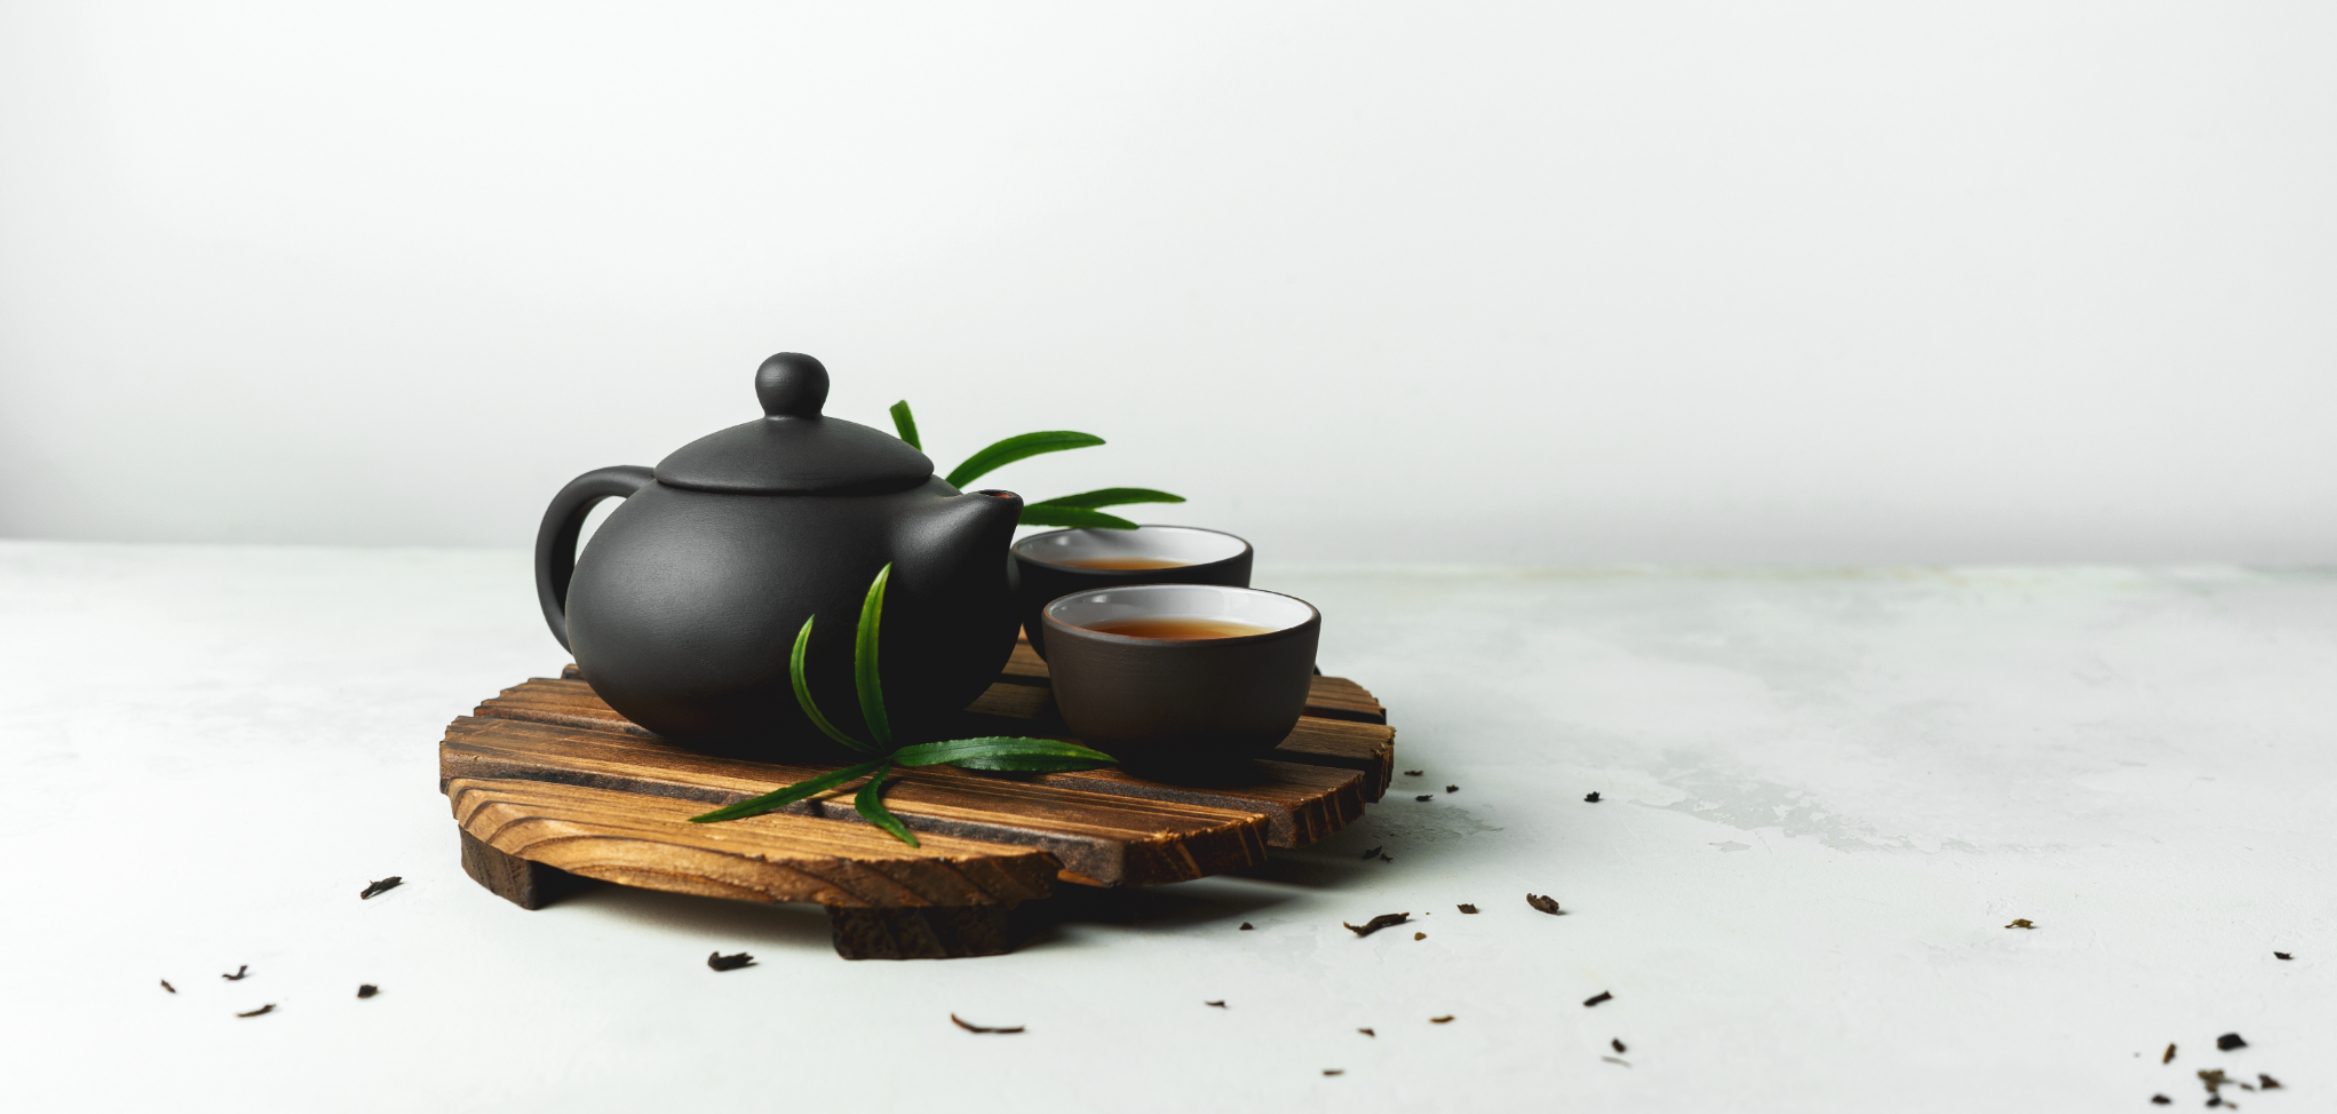 How to choose the best teapot